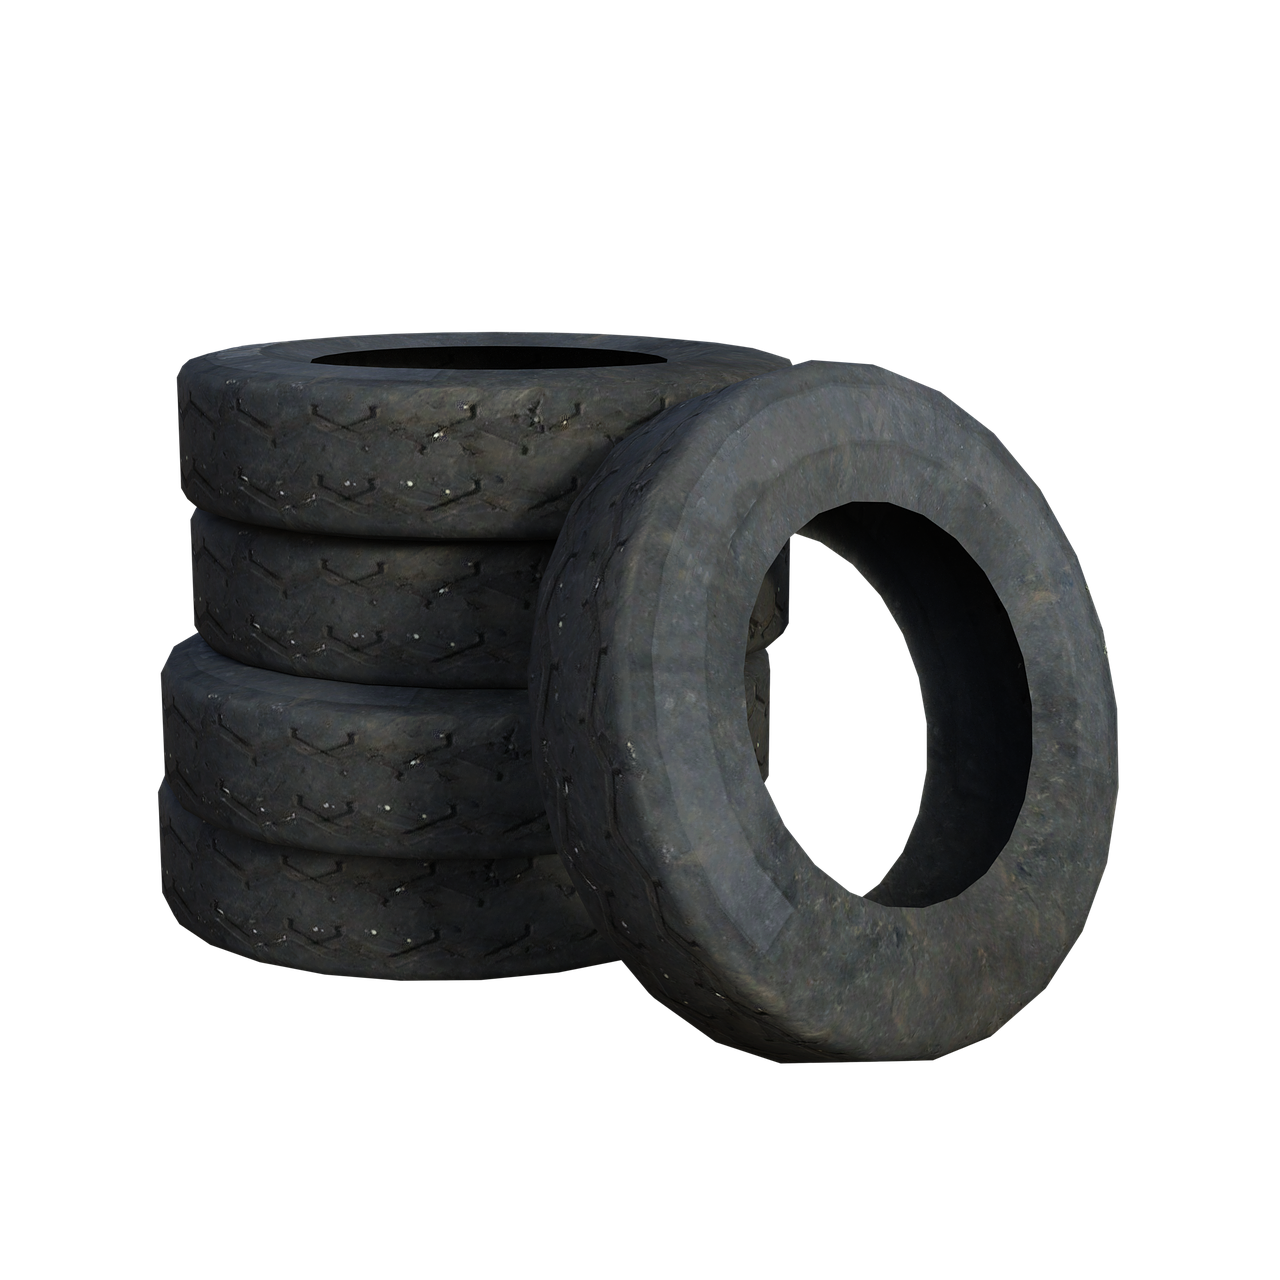 tires, pile, trash, old, rubber, replacement, repair, auto, automotive, miles, round, black, vehicle, stack, Free illustrations,free pictures, free photos, free images, royalty free, free illustrations, public domain